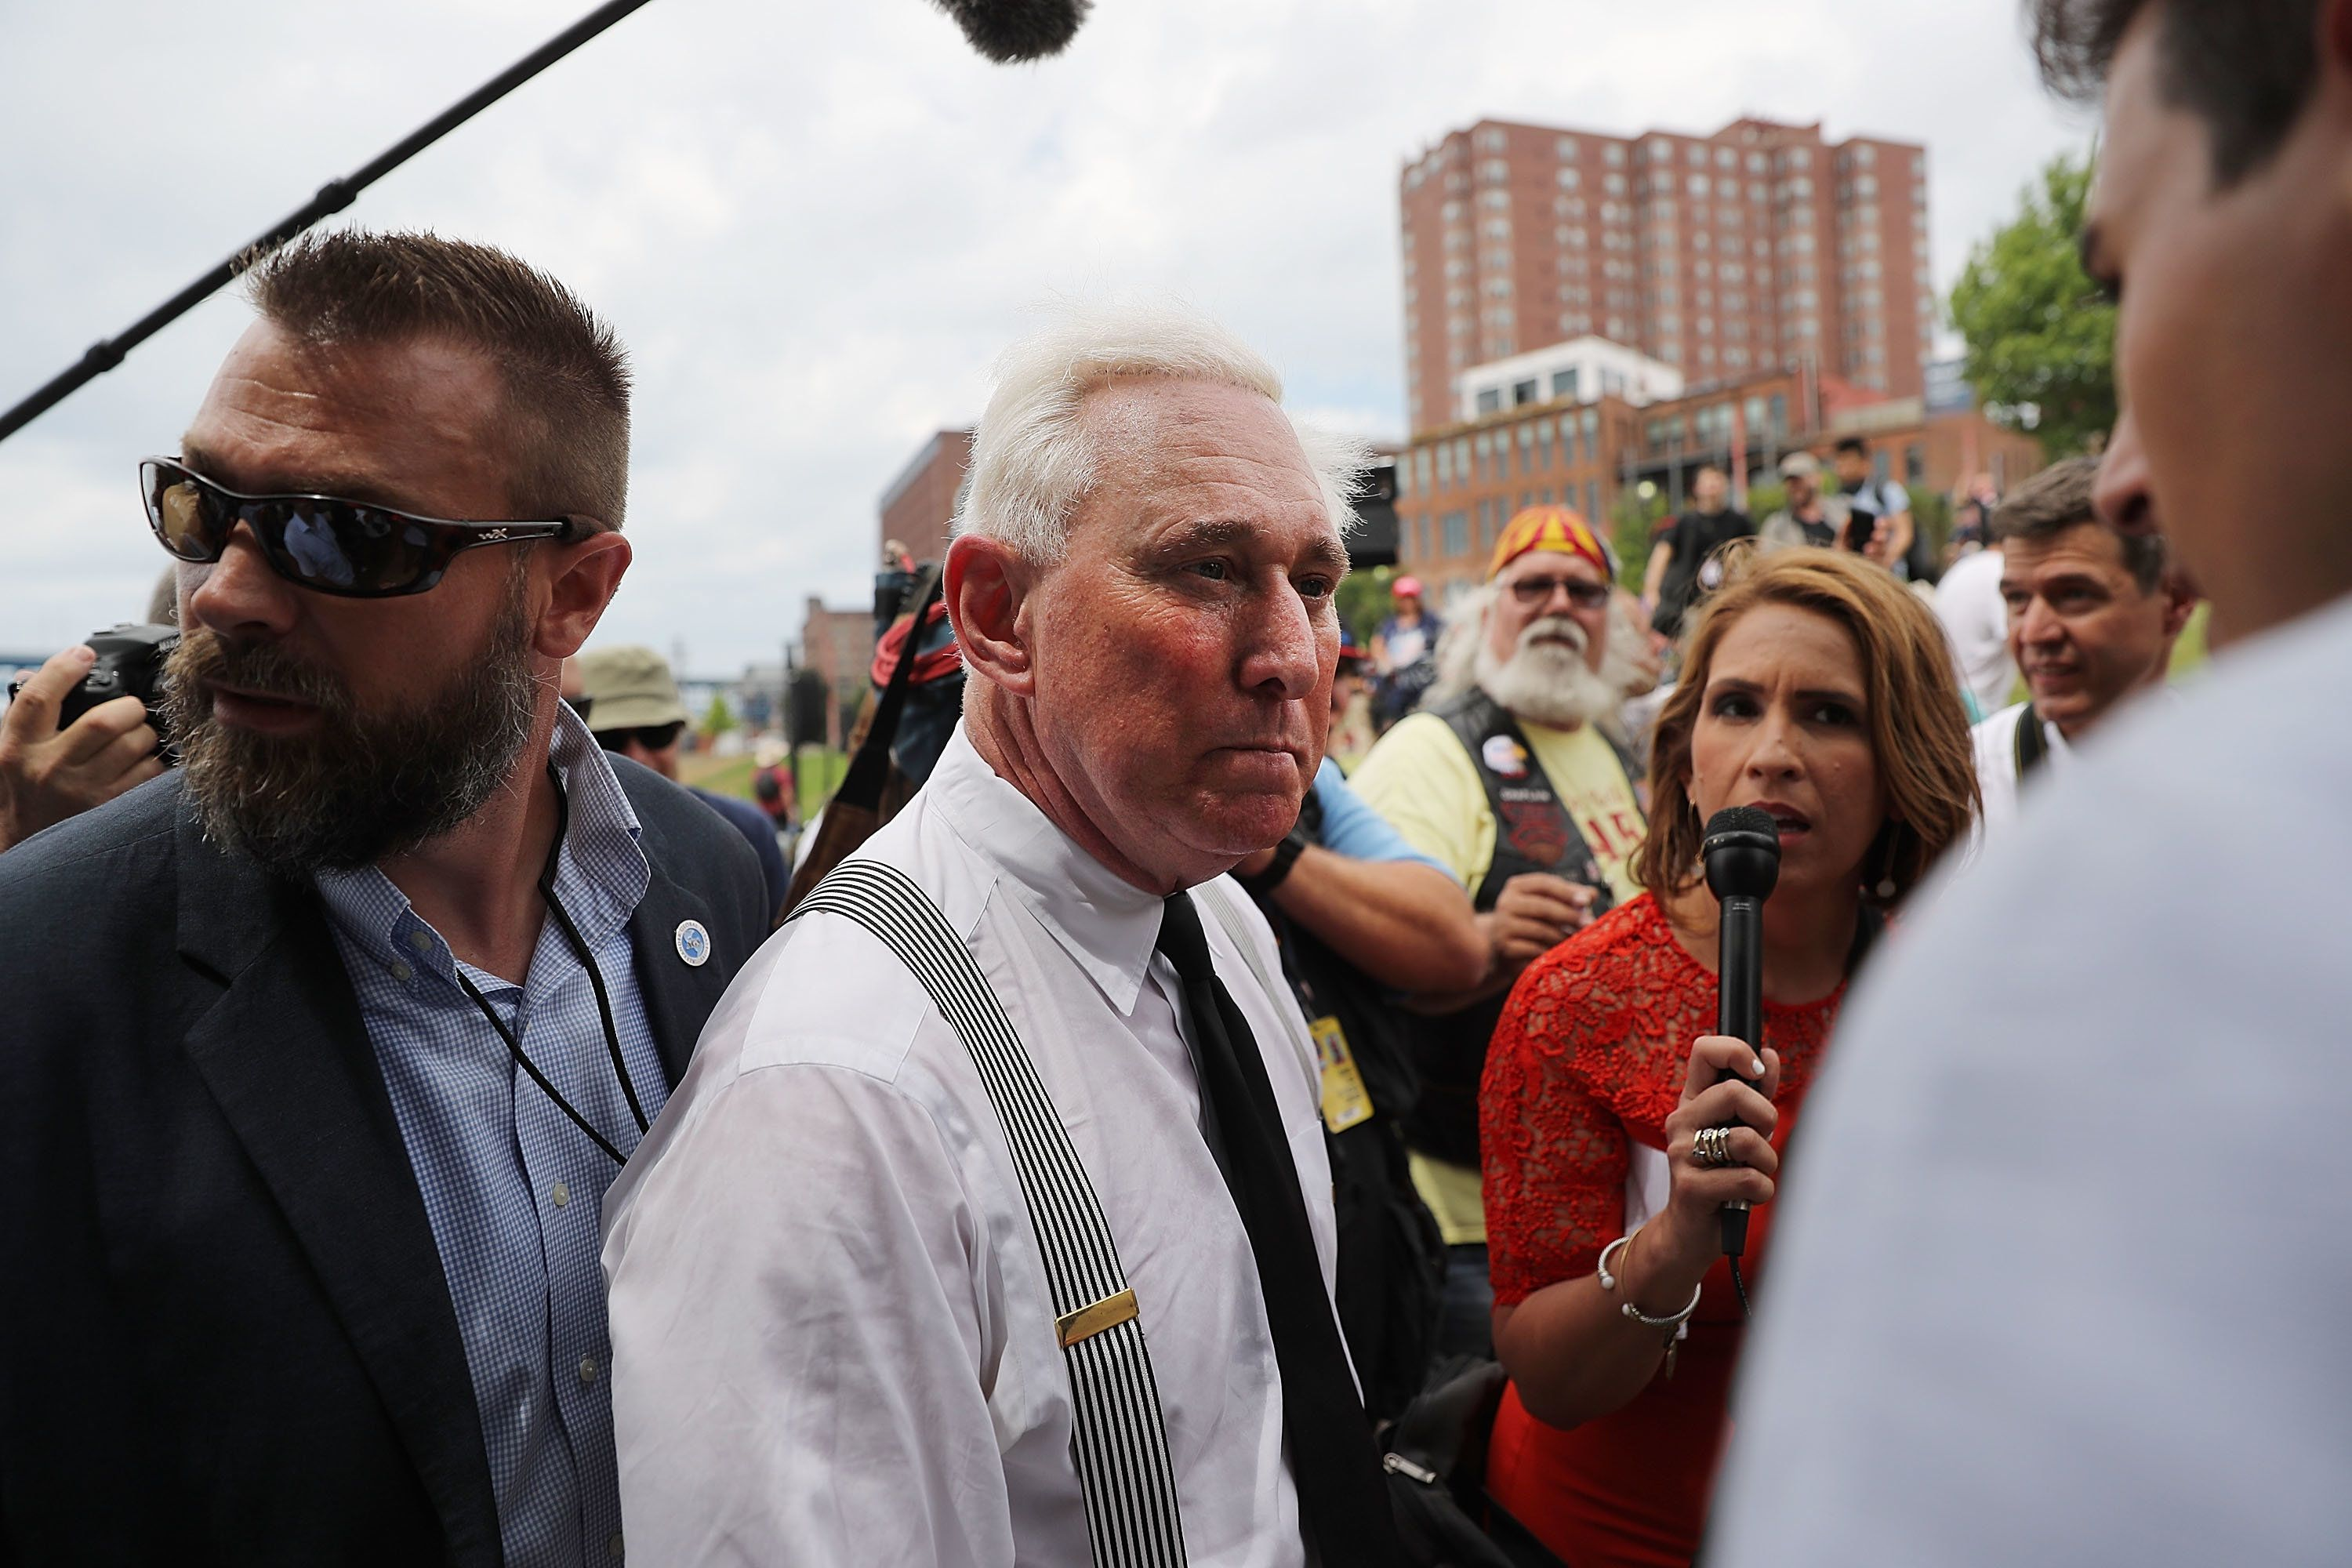 Roger Stone arrested - Ex-consultant does not want to against Trump's statements